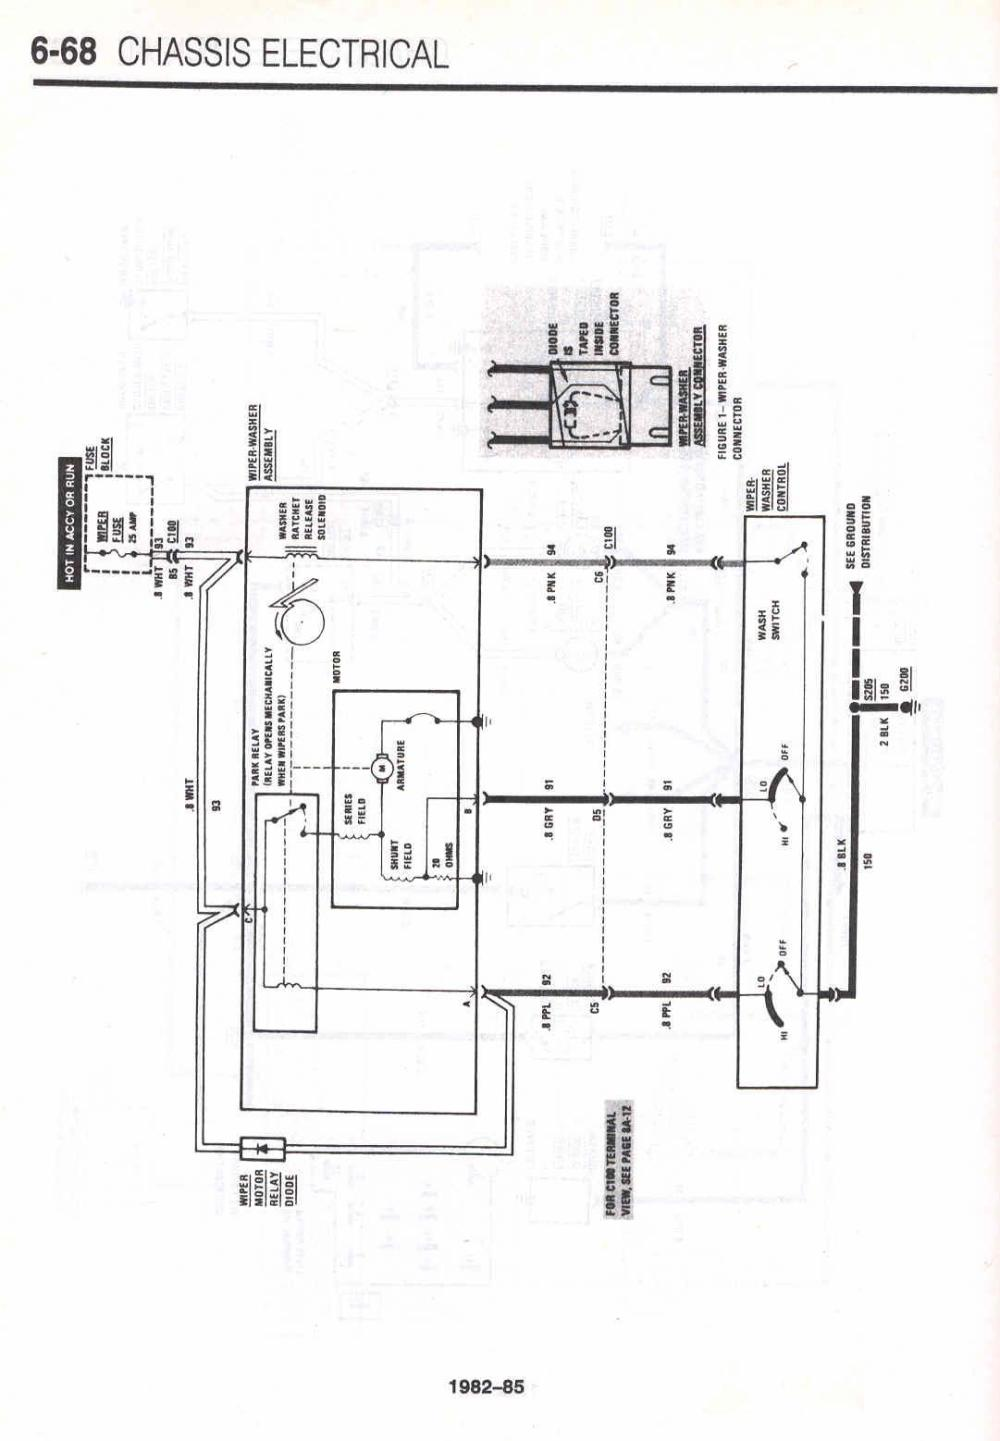 medium resolution of electric choke wiring diagram 84 caprice wiring diagram third level car info one wire electric choke